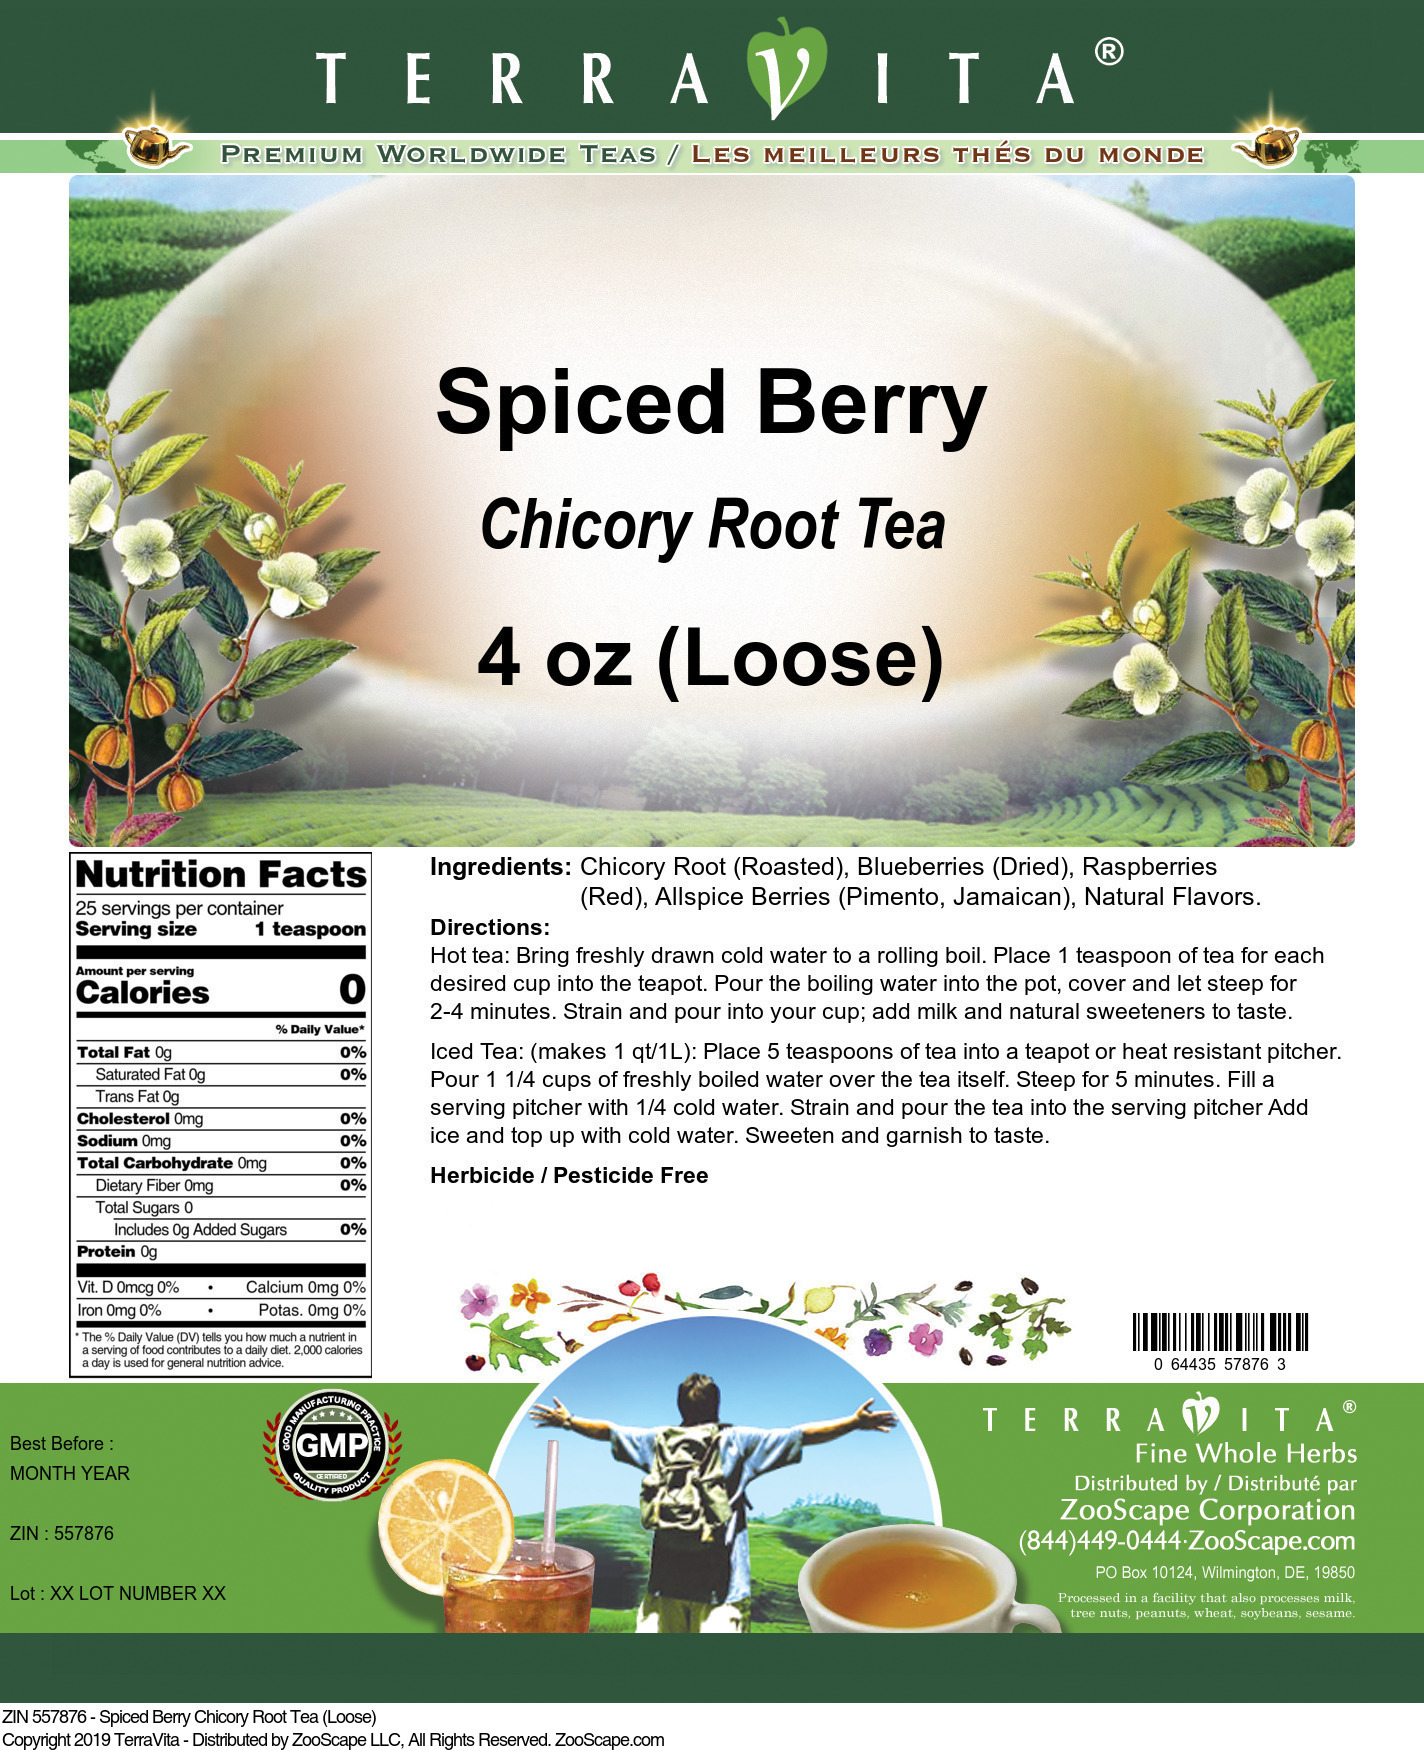 Spiced Berry Chicory Root